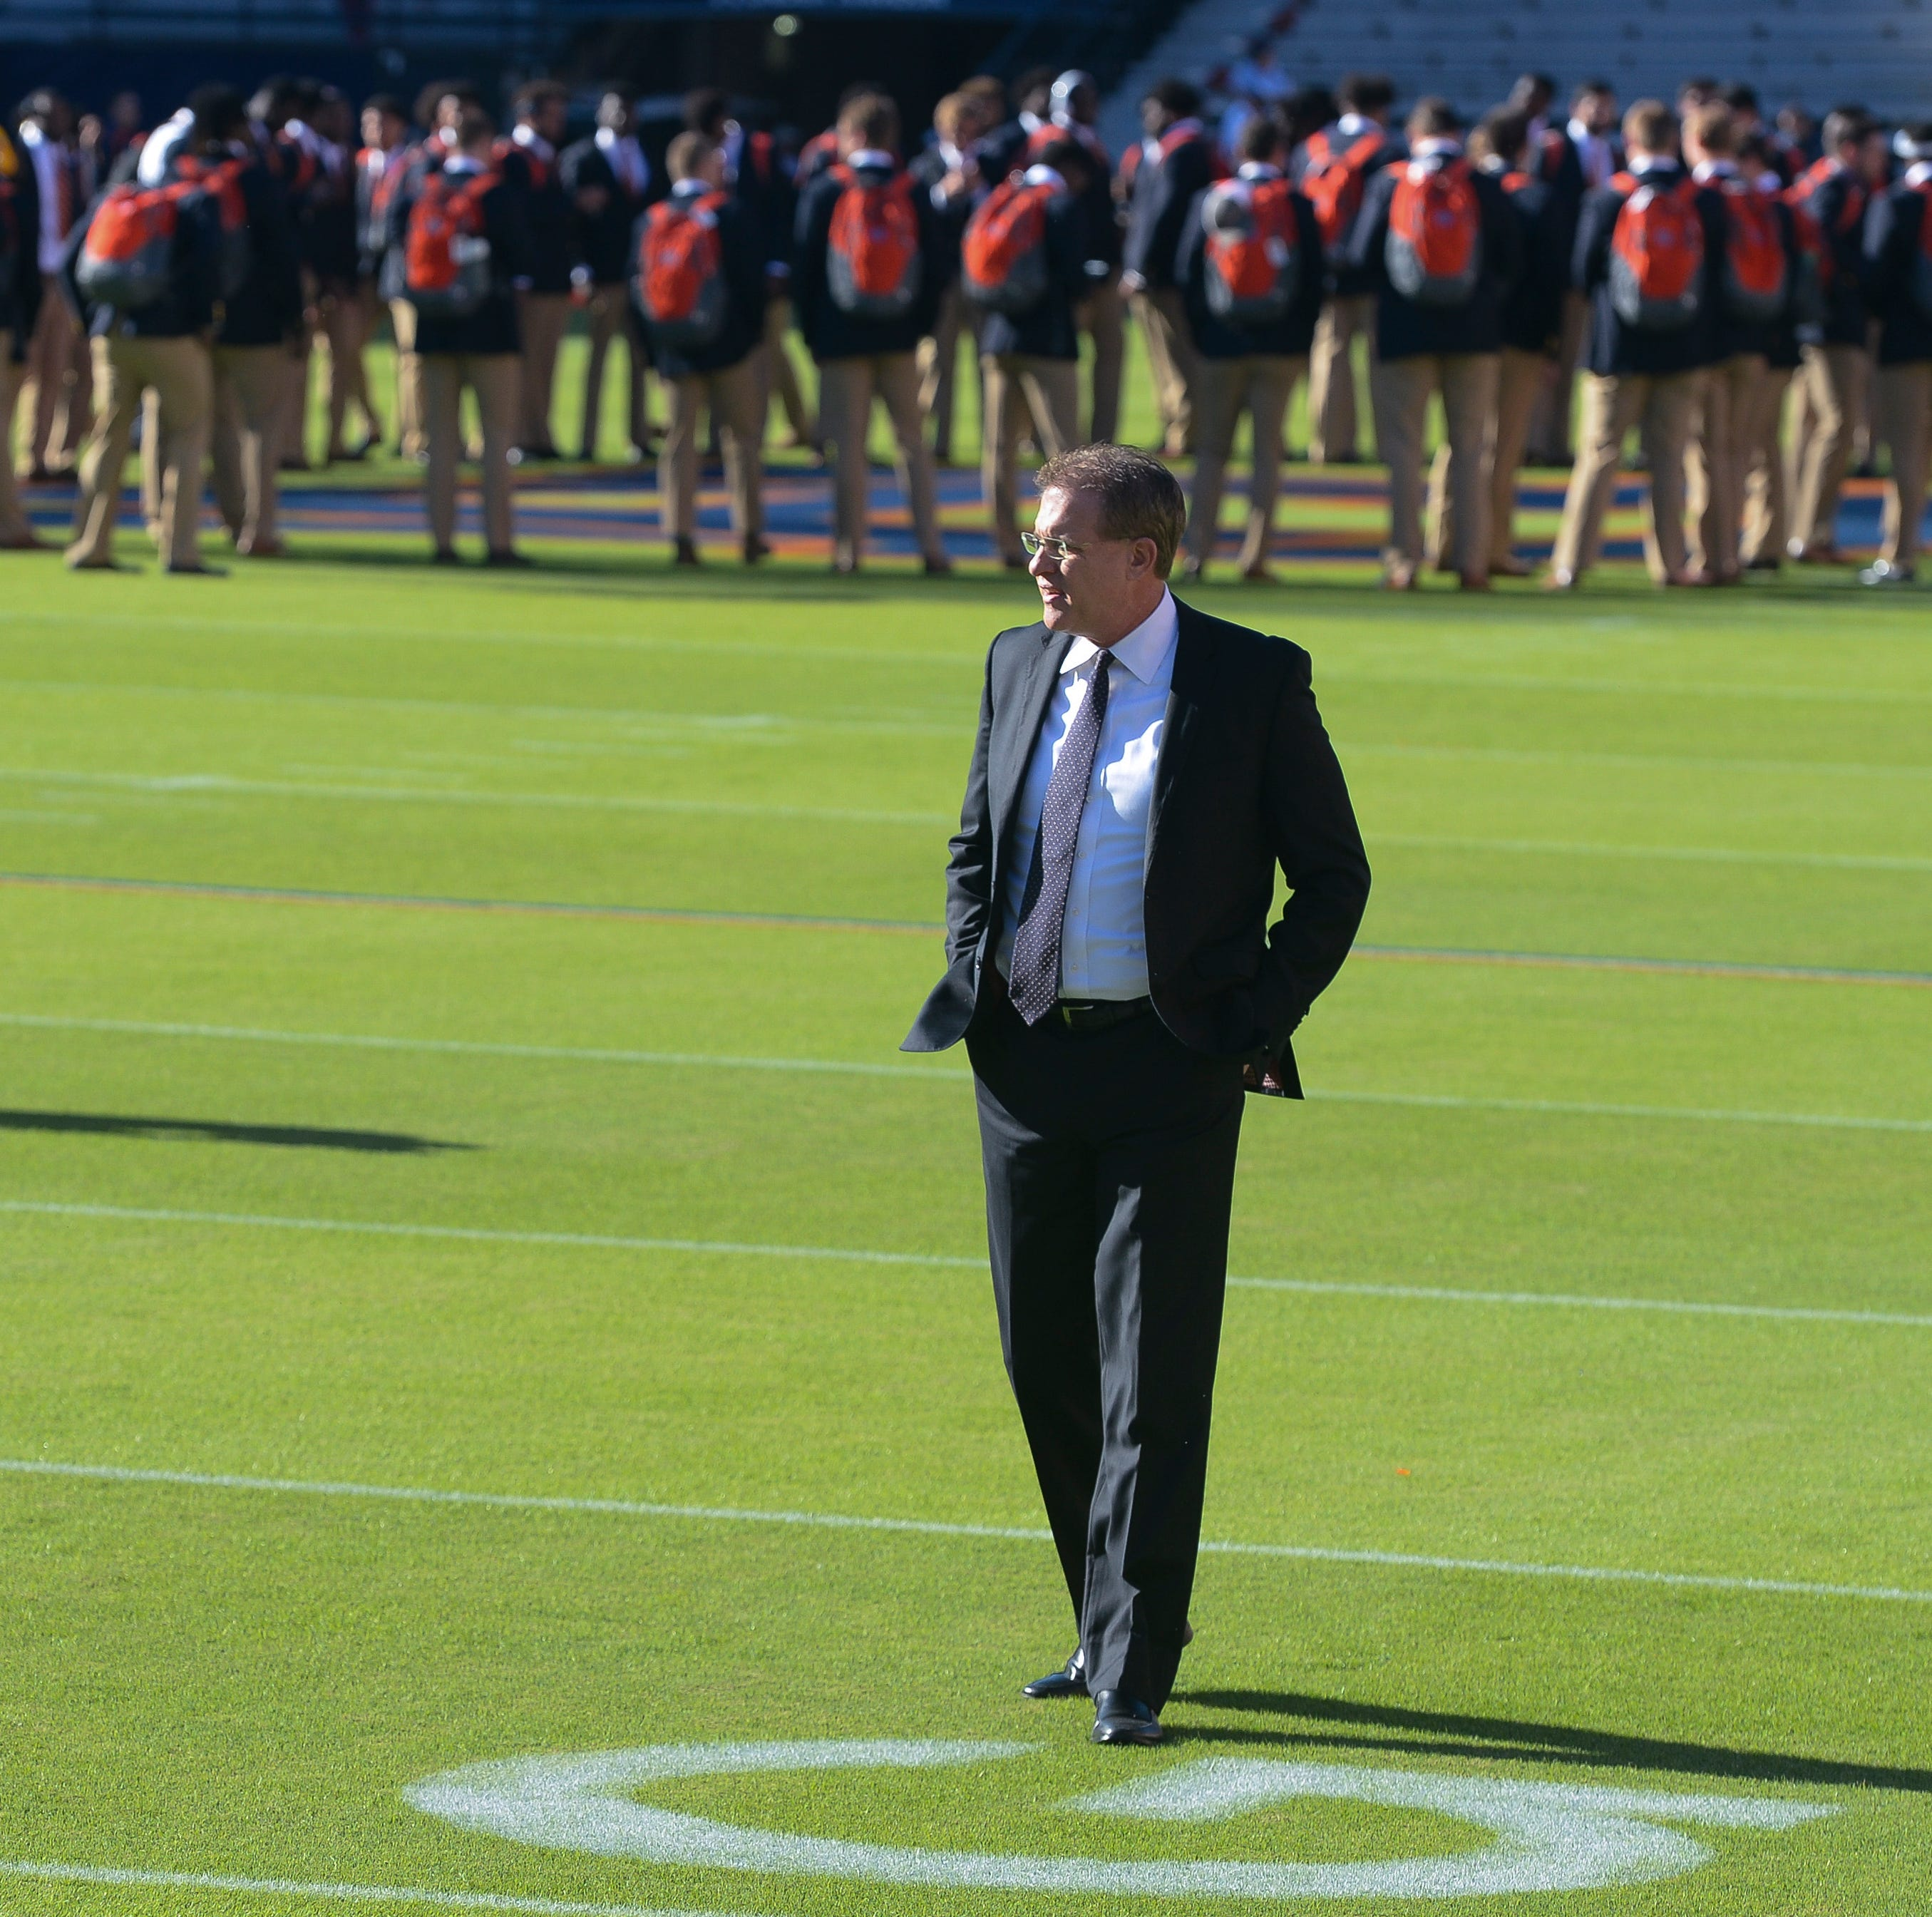 Auburn fans, it's perfectly OK if you want Malzahn gone